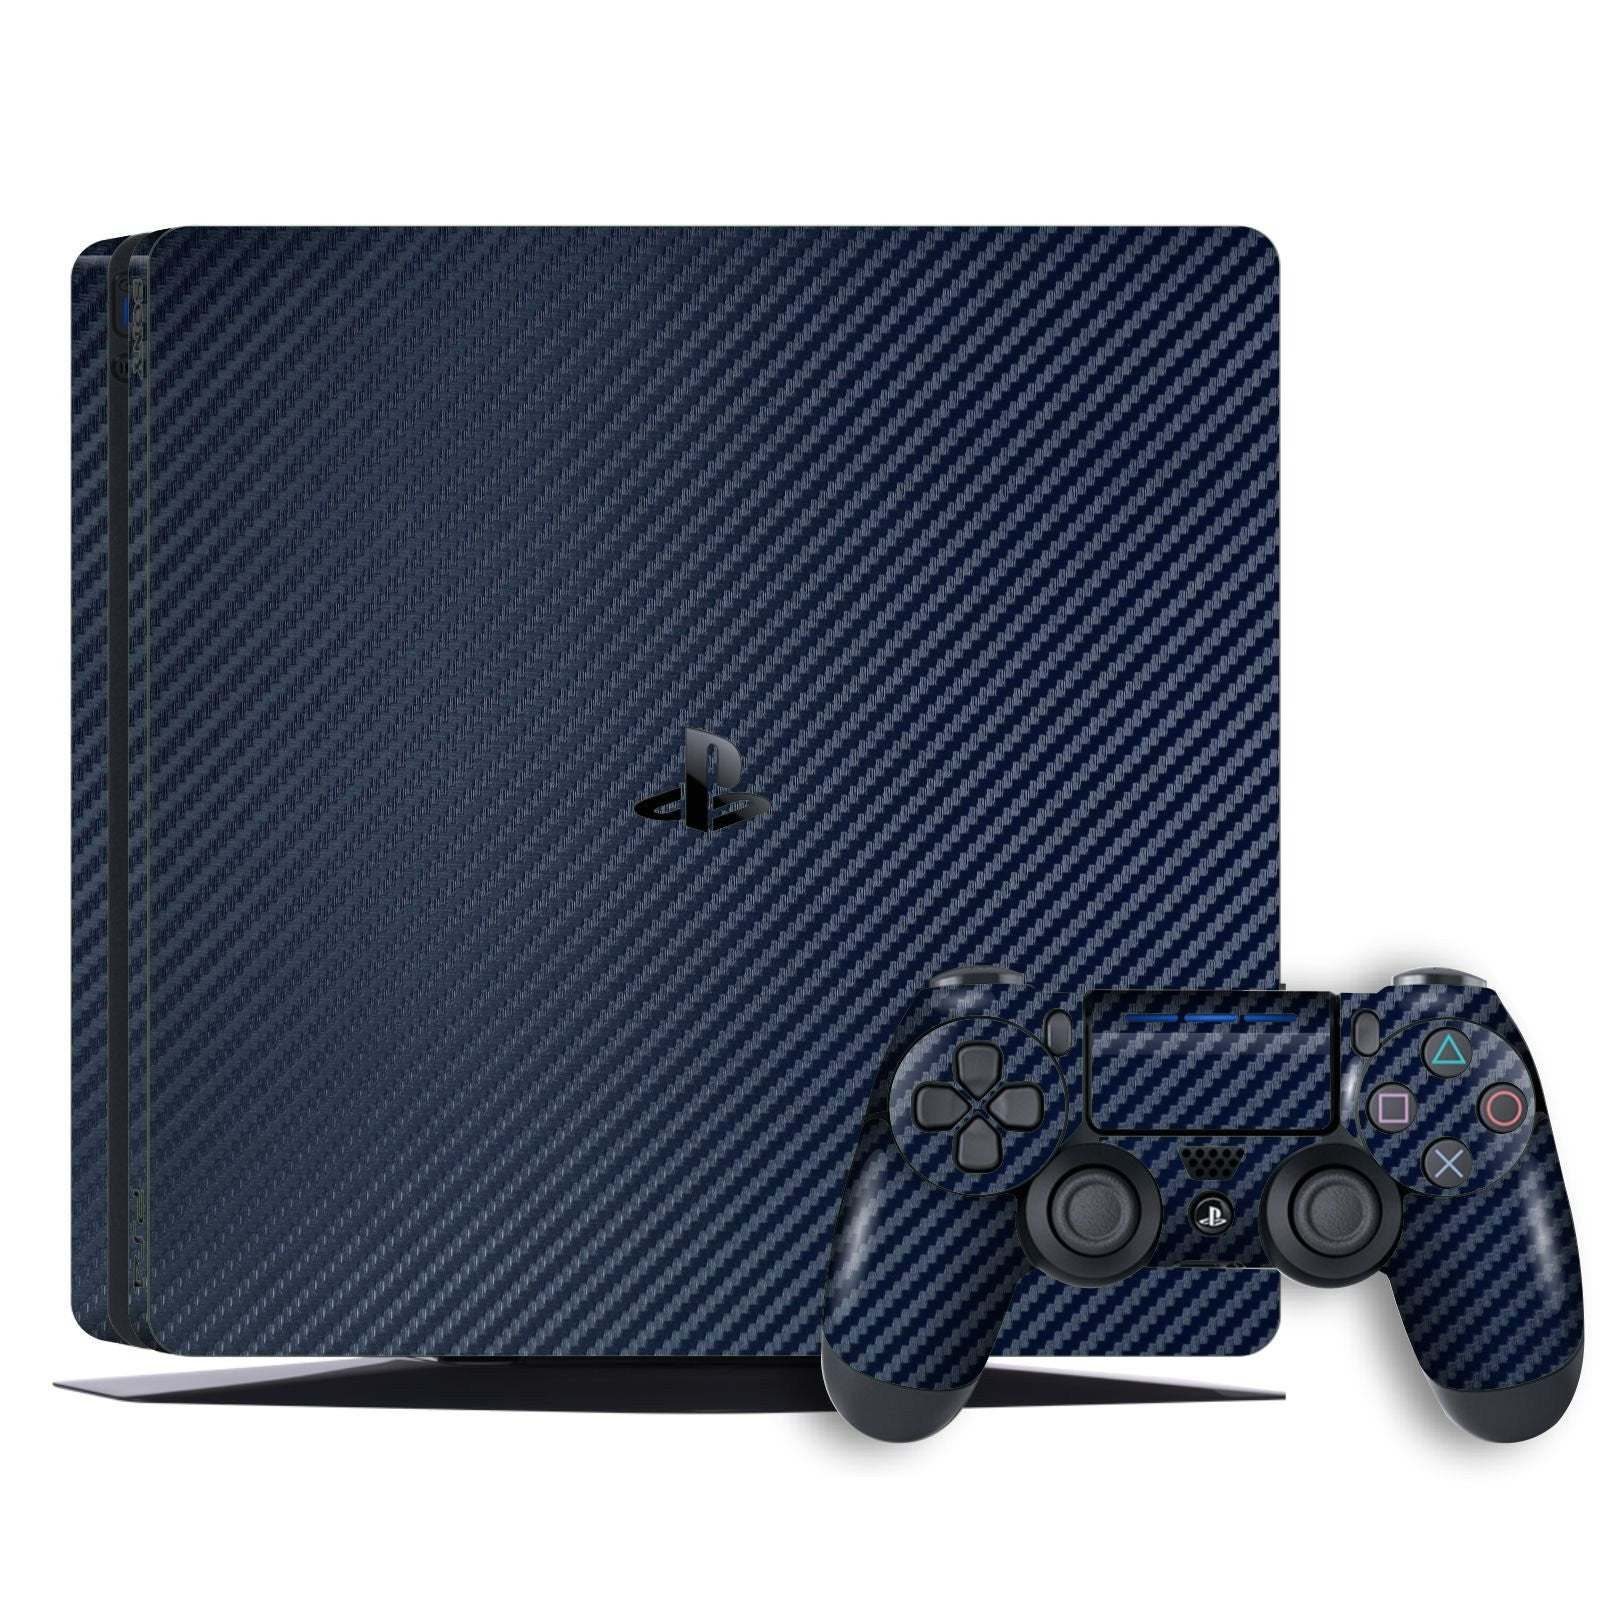 Playstation 4 SLIM PS4 SLIM Navy Blue Carbon Fibre Fiber Skin Wrap Decal by EasySkinz